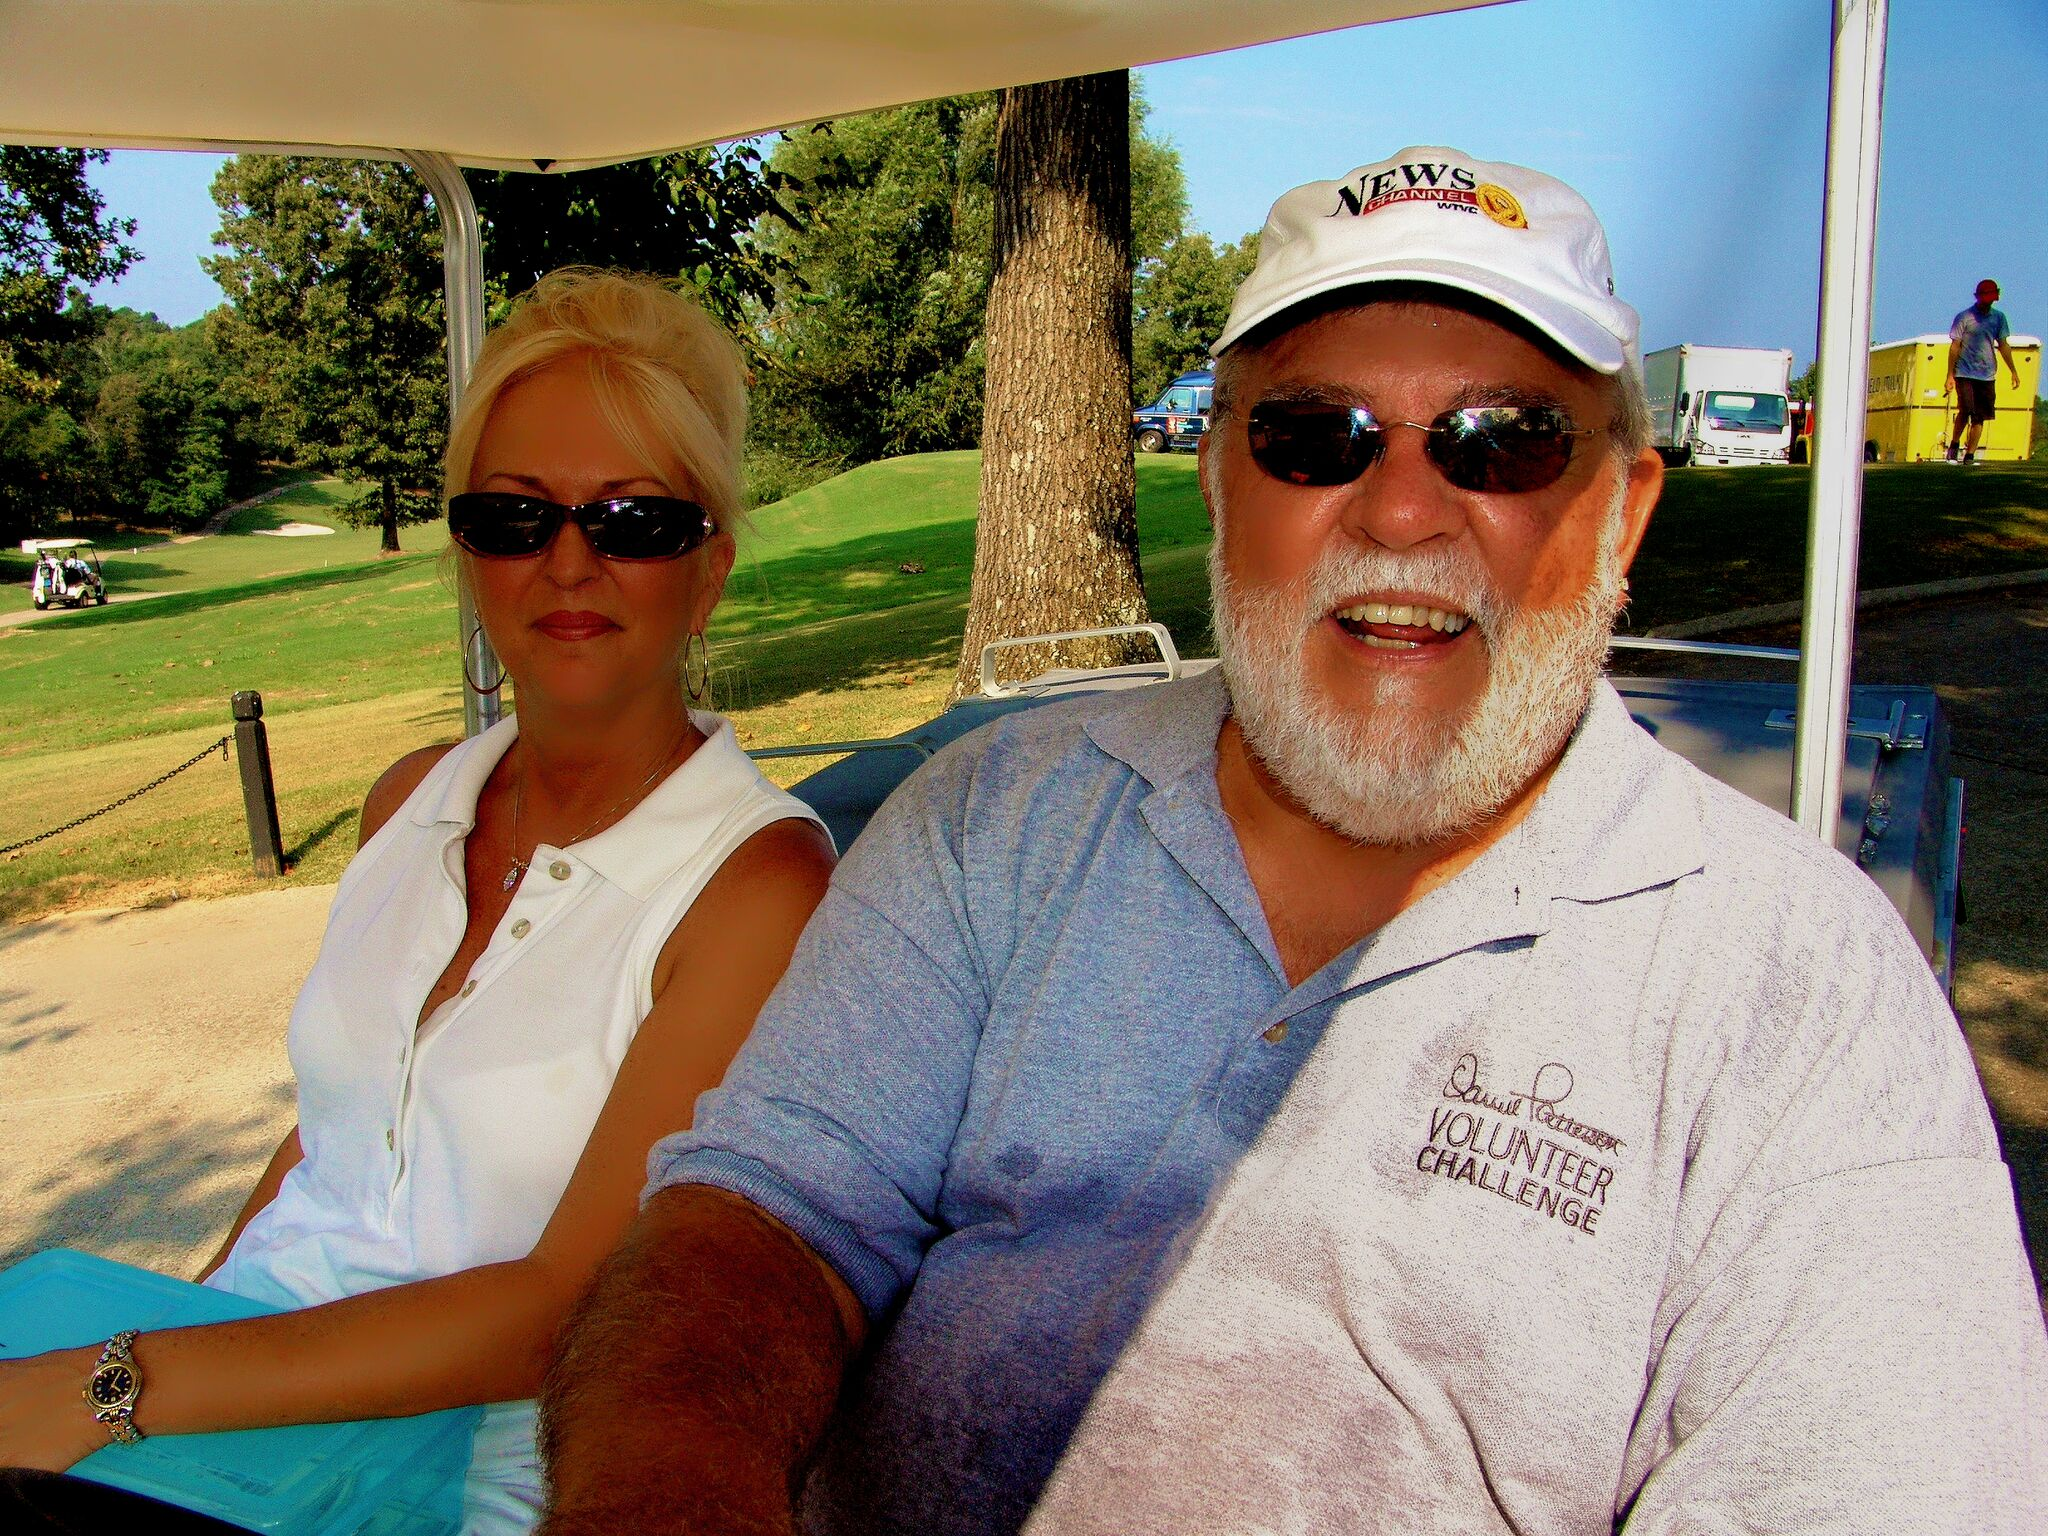 Don &amp;amp; his wife Sammie during the Darrell Patterson Volunteer Challenge. (Image via John Creel)<p></p>